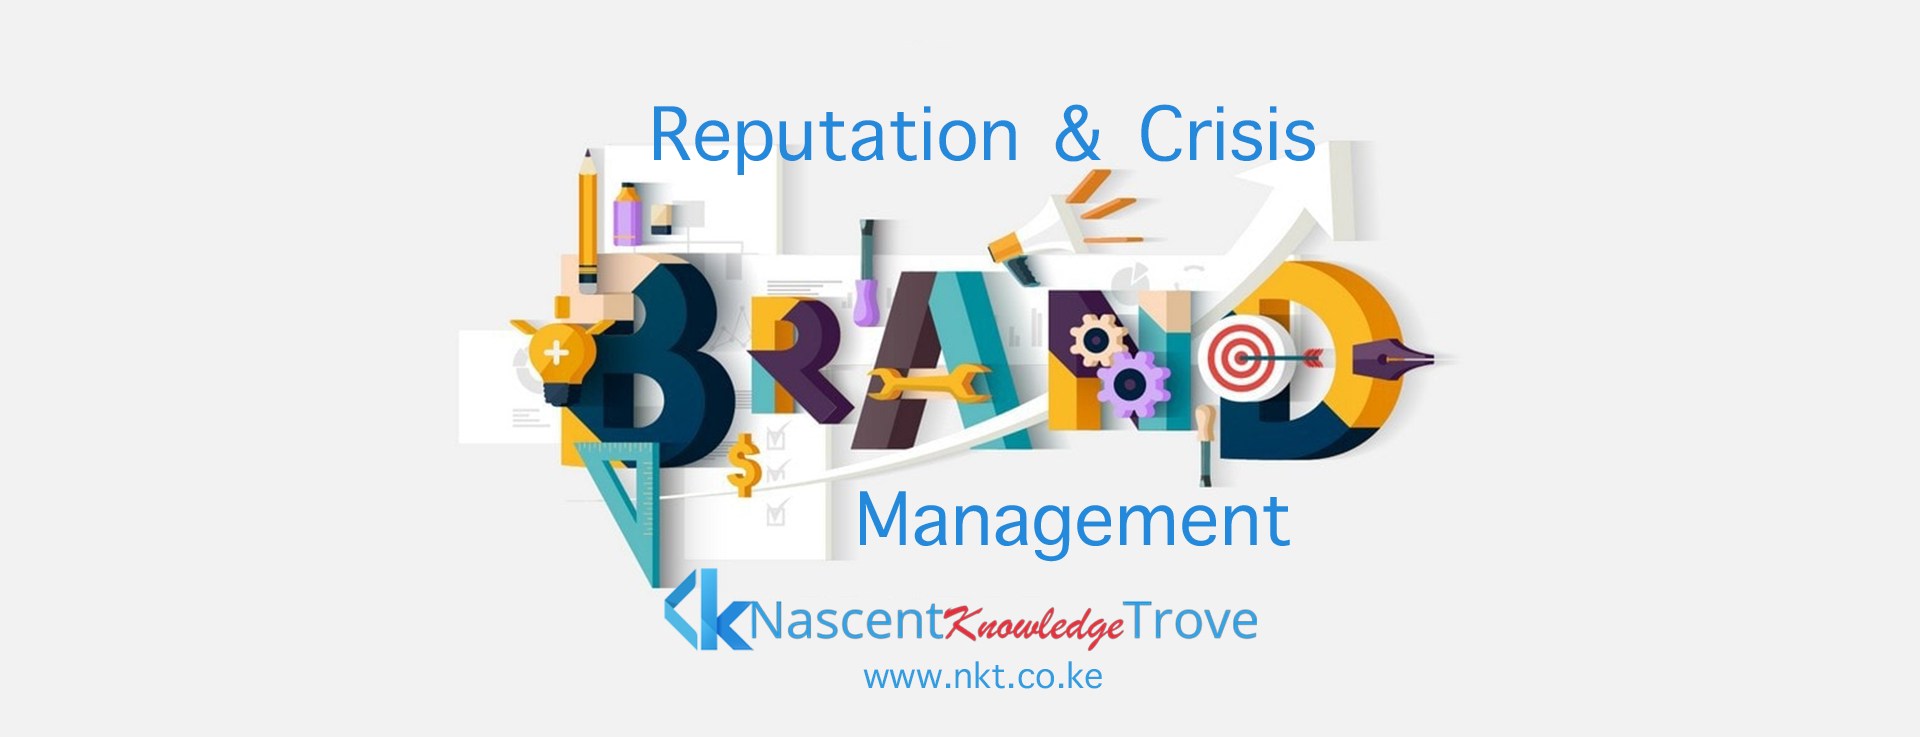 Online & Social Media Reputation and Crisis Management by Nascent Knowledge Trove (NKT)